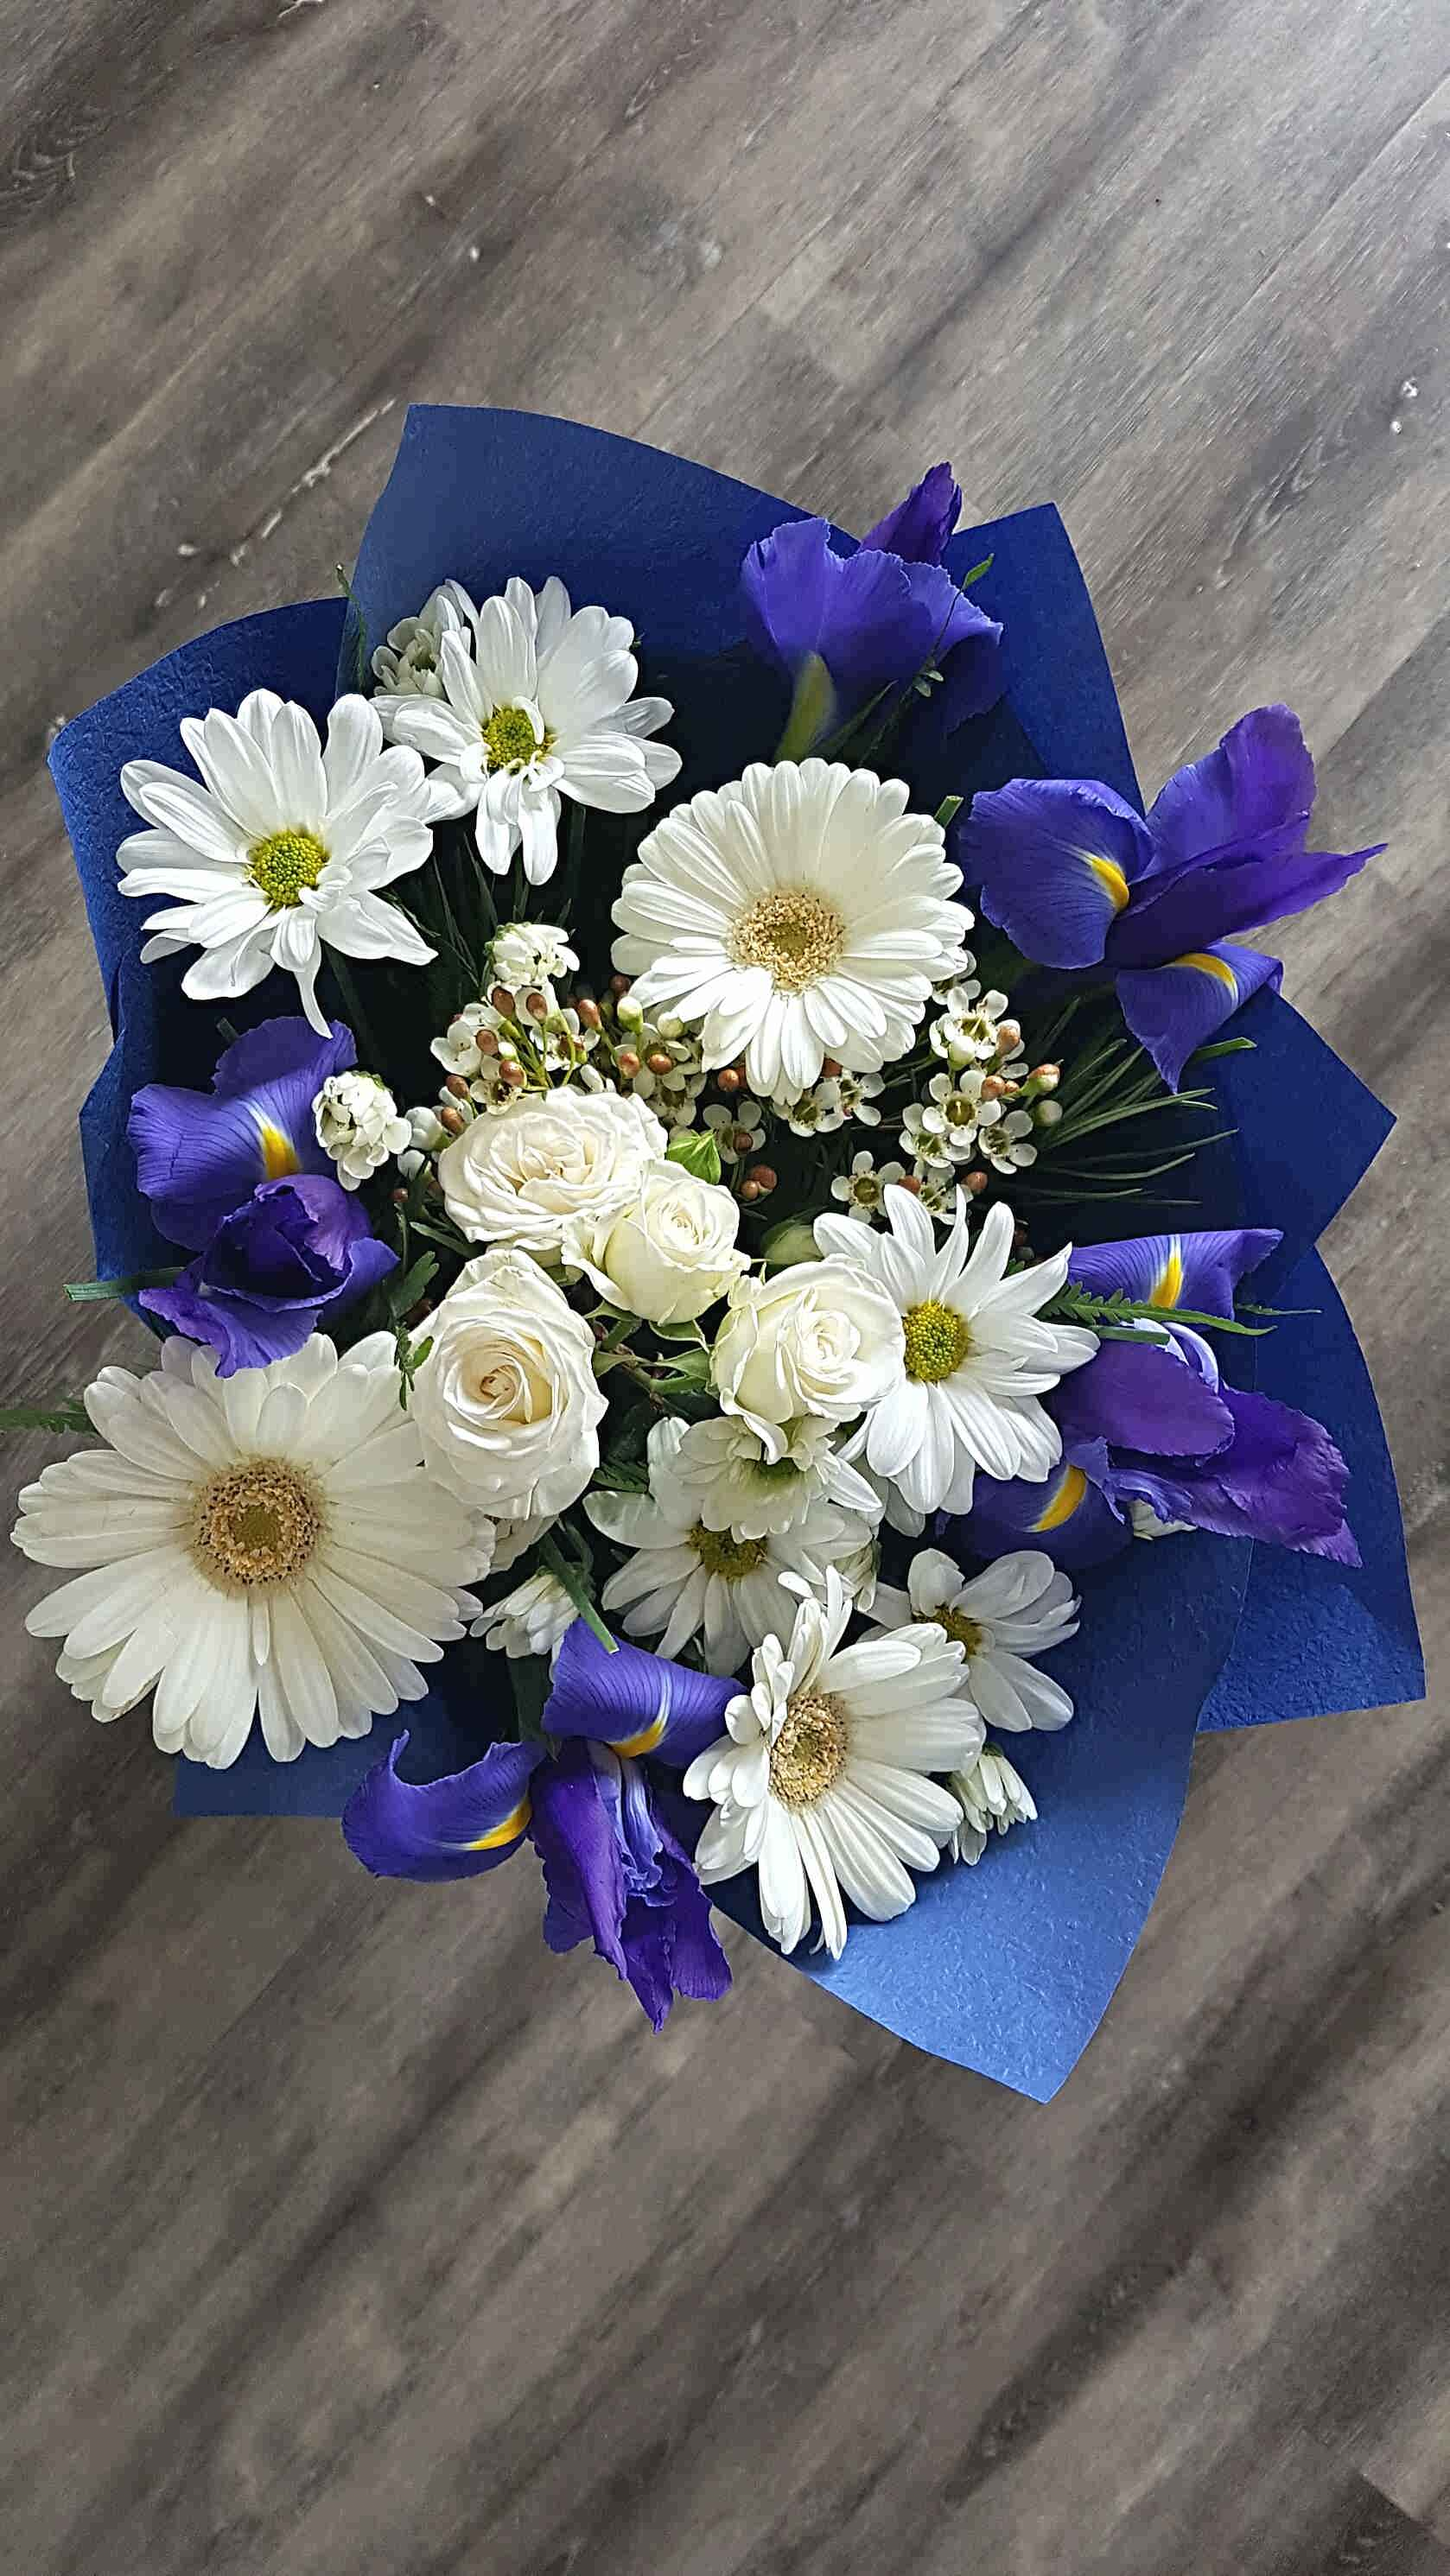 A STUNNING SELECTION OF SEASONAL BLOOMS, TO HELP CELEBRATE A BIRTH OF A BABY BOY, OR A BEAUTIFUL BOUQUET FOR A SPECIAL FRIEND.